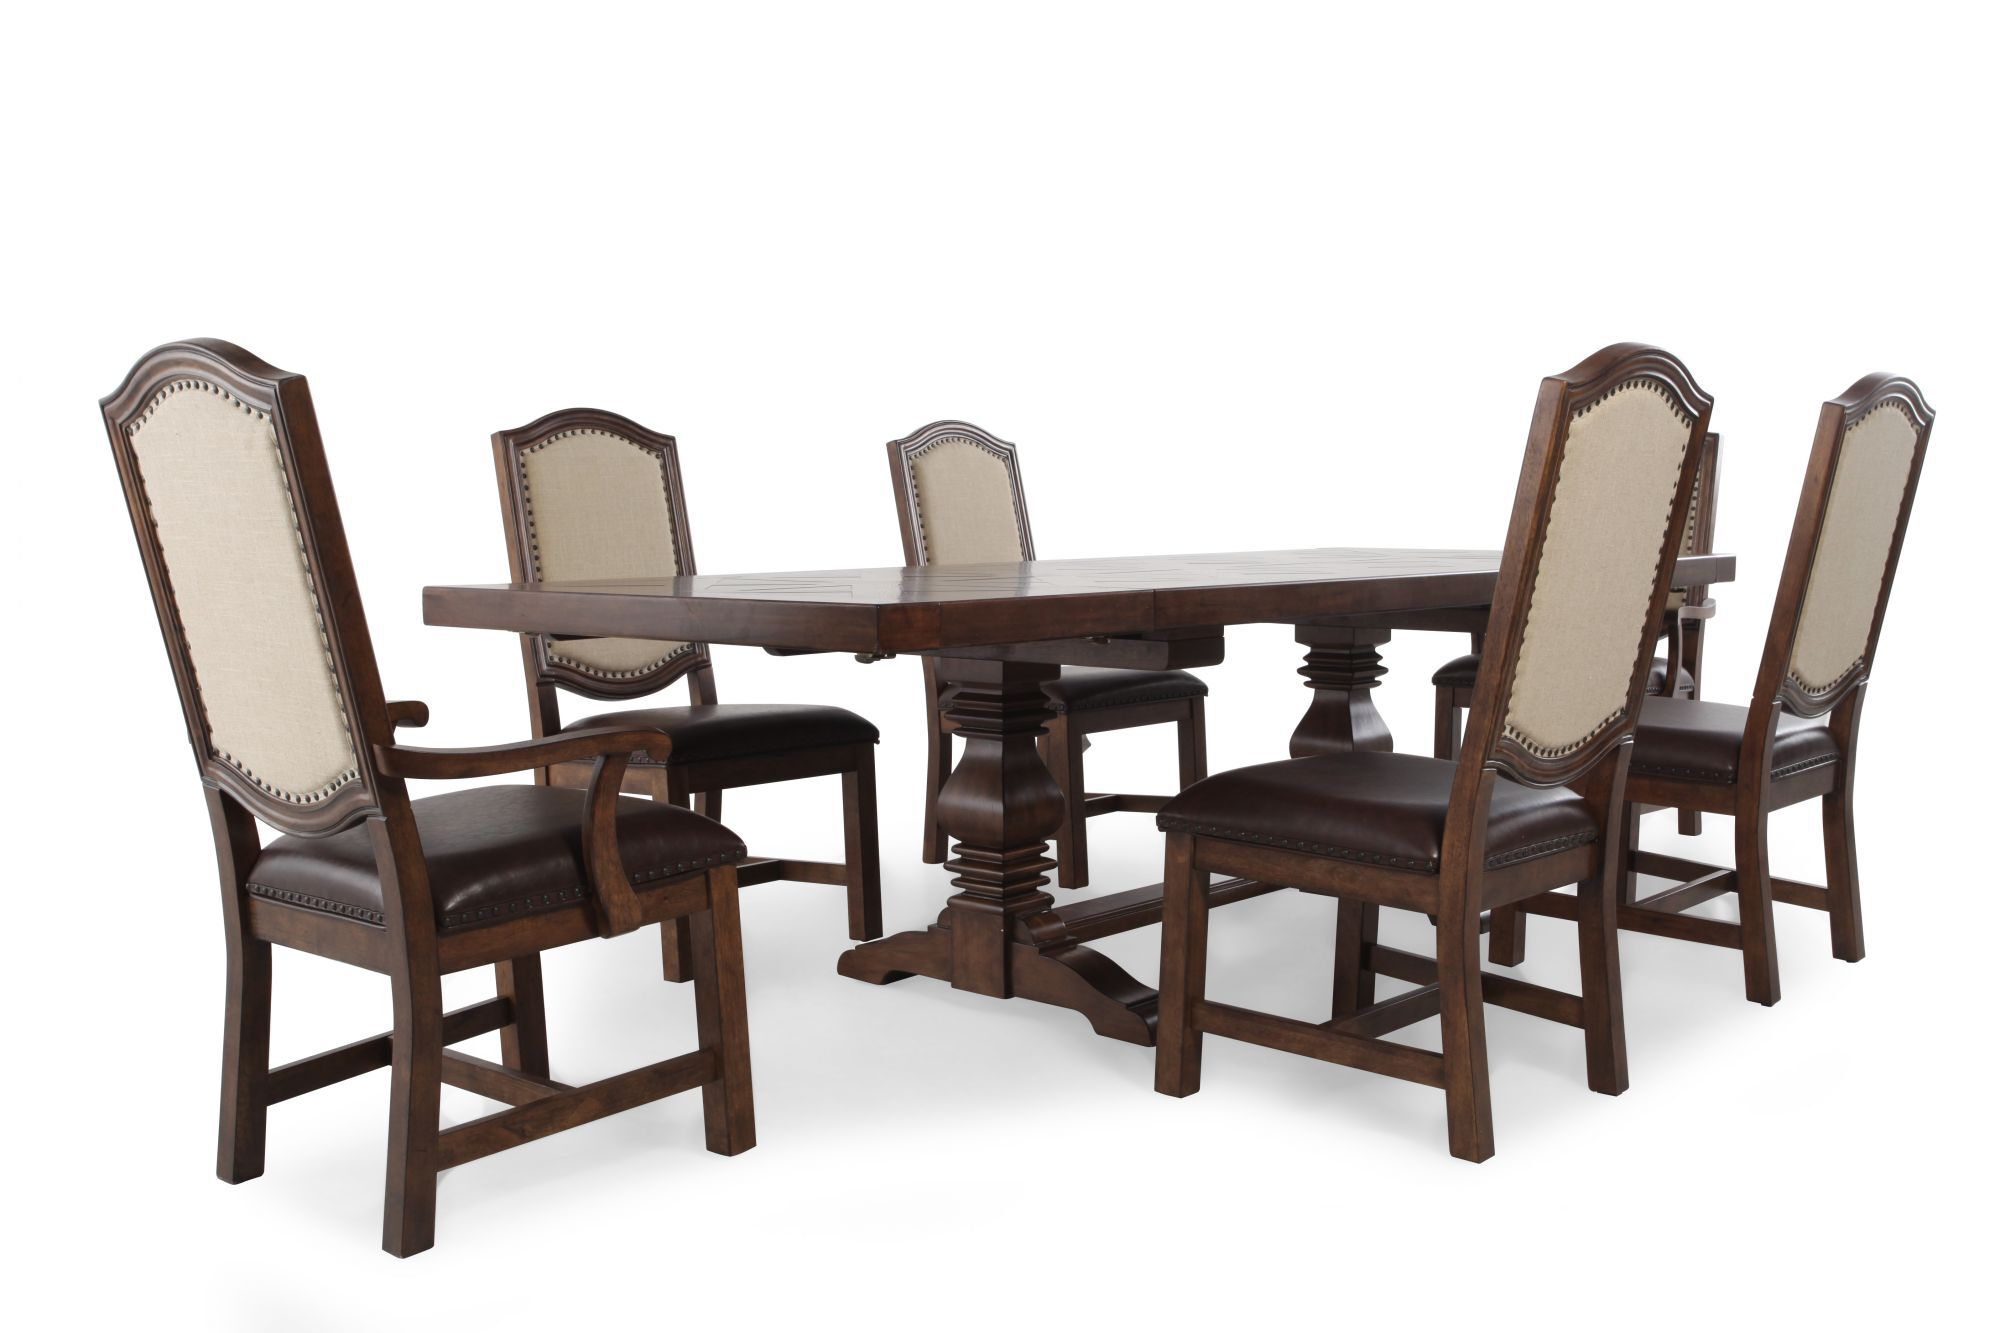 Samuel Lawrence American Attitude Seven Piece Dining Table